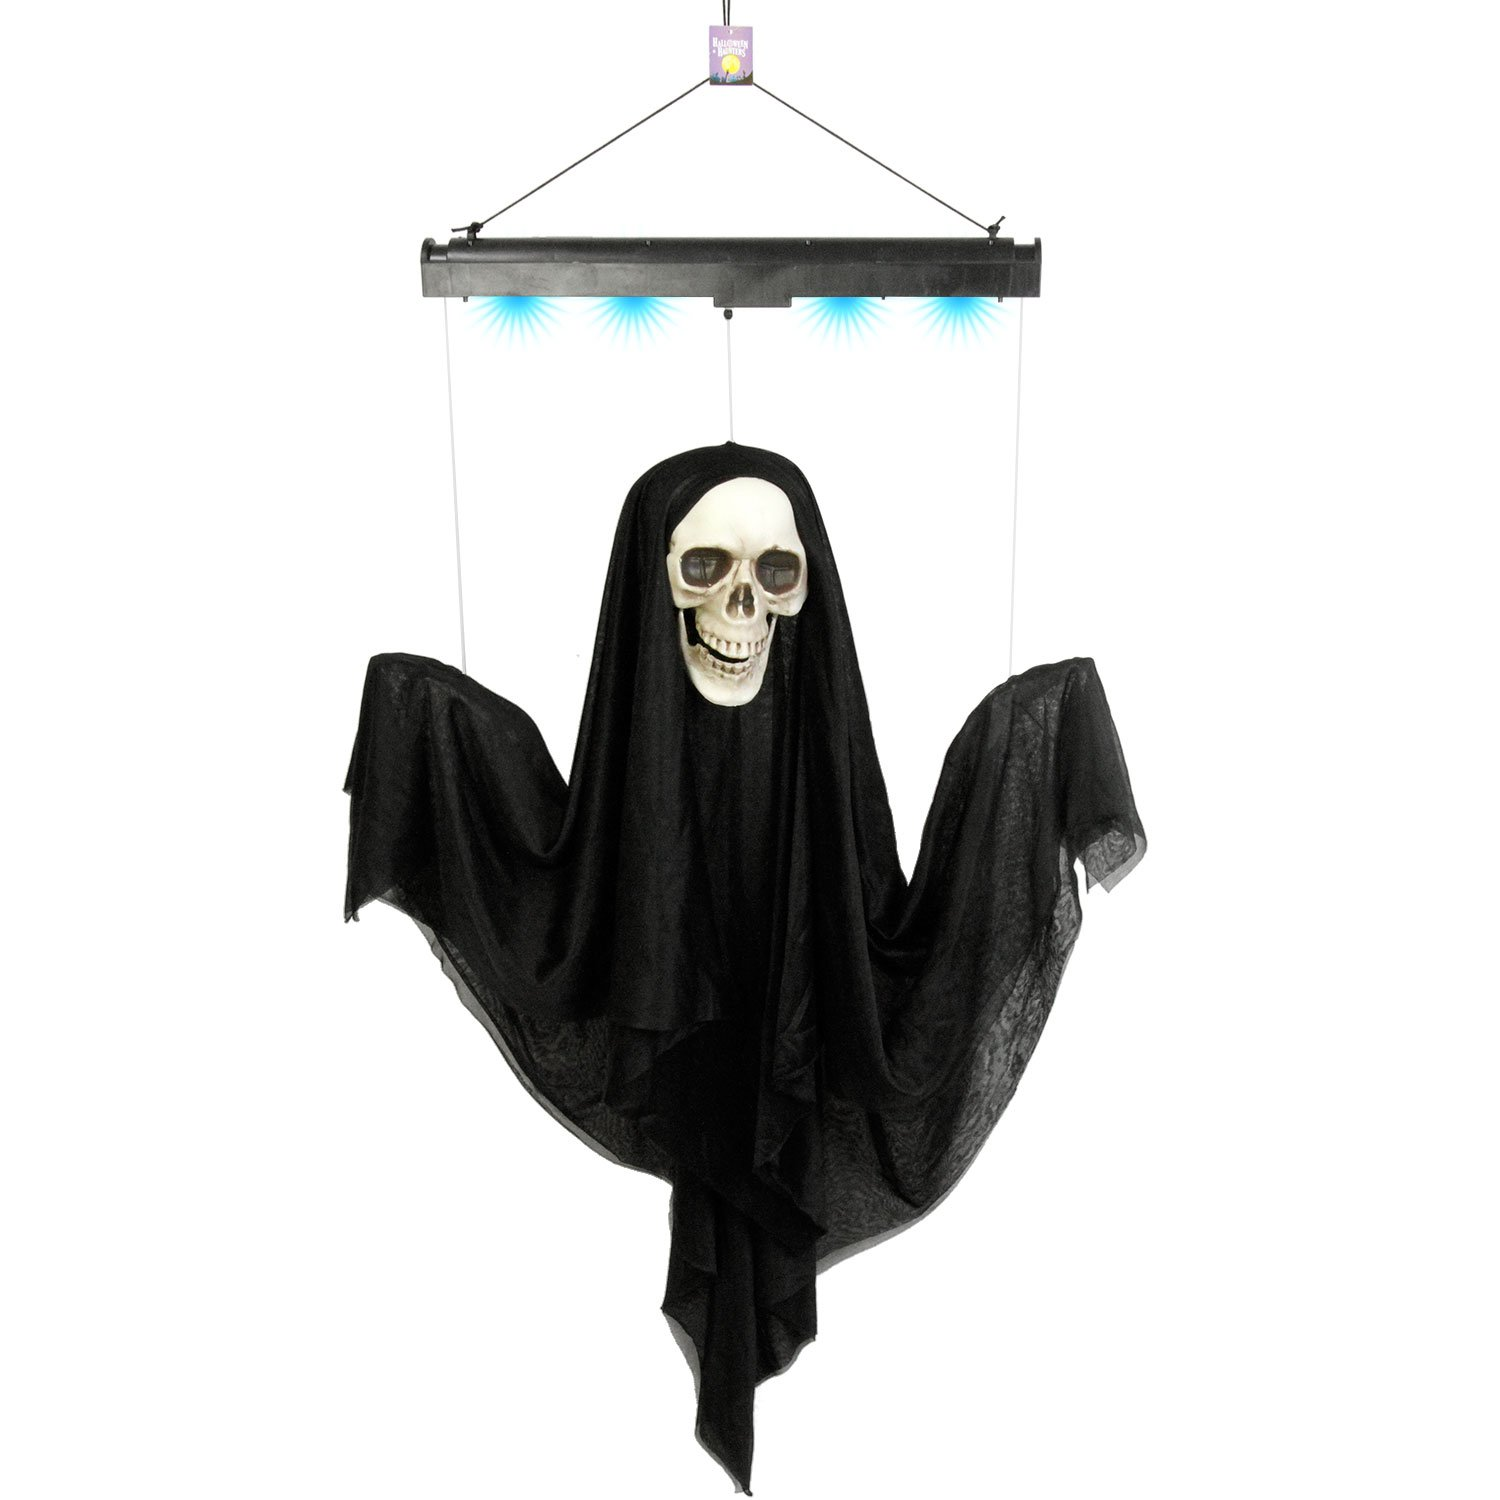 Halloween Haunters Animated 4 Foot Hanging Floating Scary Black Ghost Reaper Prop Decoration - Arms & Head Float Up & Down, Eerie Boos, Blue Lights - Battery Operated